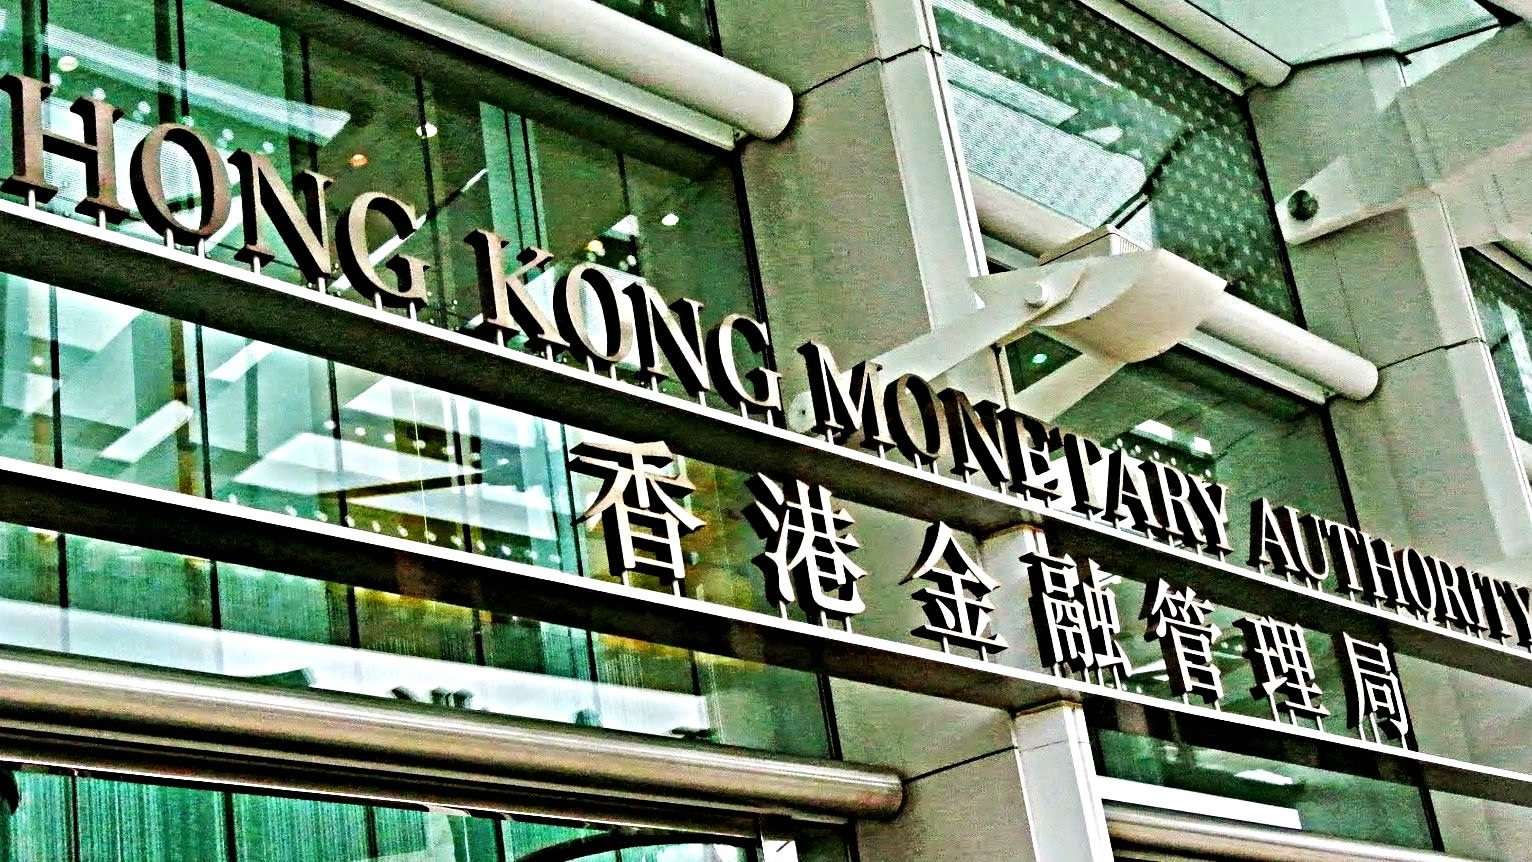 Hong Kong Monetary Authority Commits 1 Bln Usd For Investing In Emerging Markets Cgtn